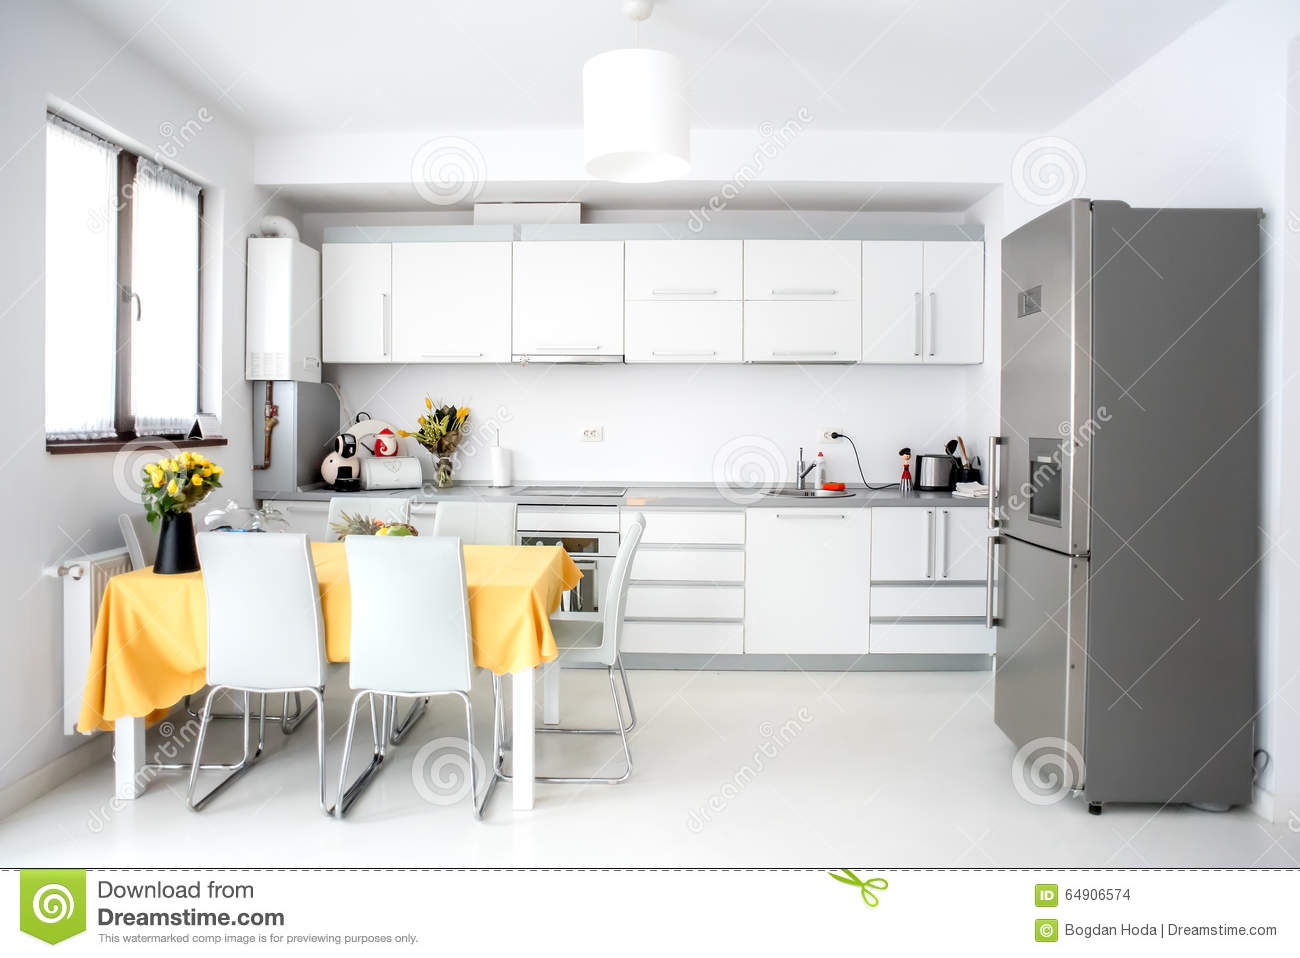 Interior Design Modern And Minimalist Kitchen With Appliances And